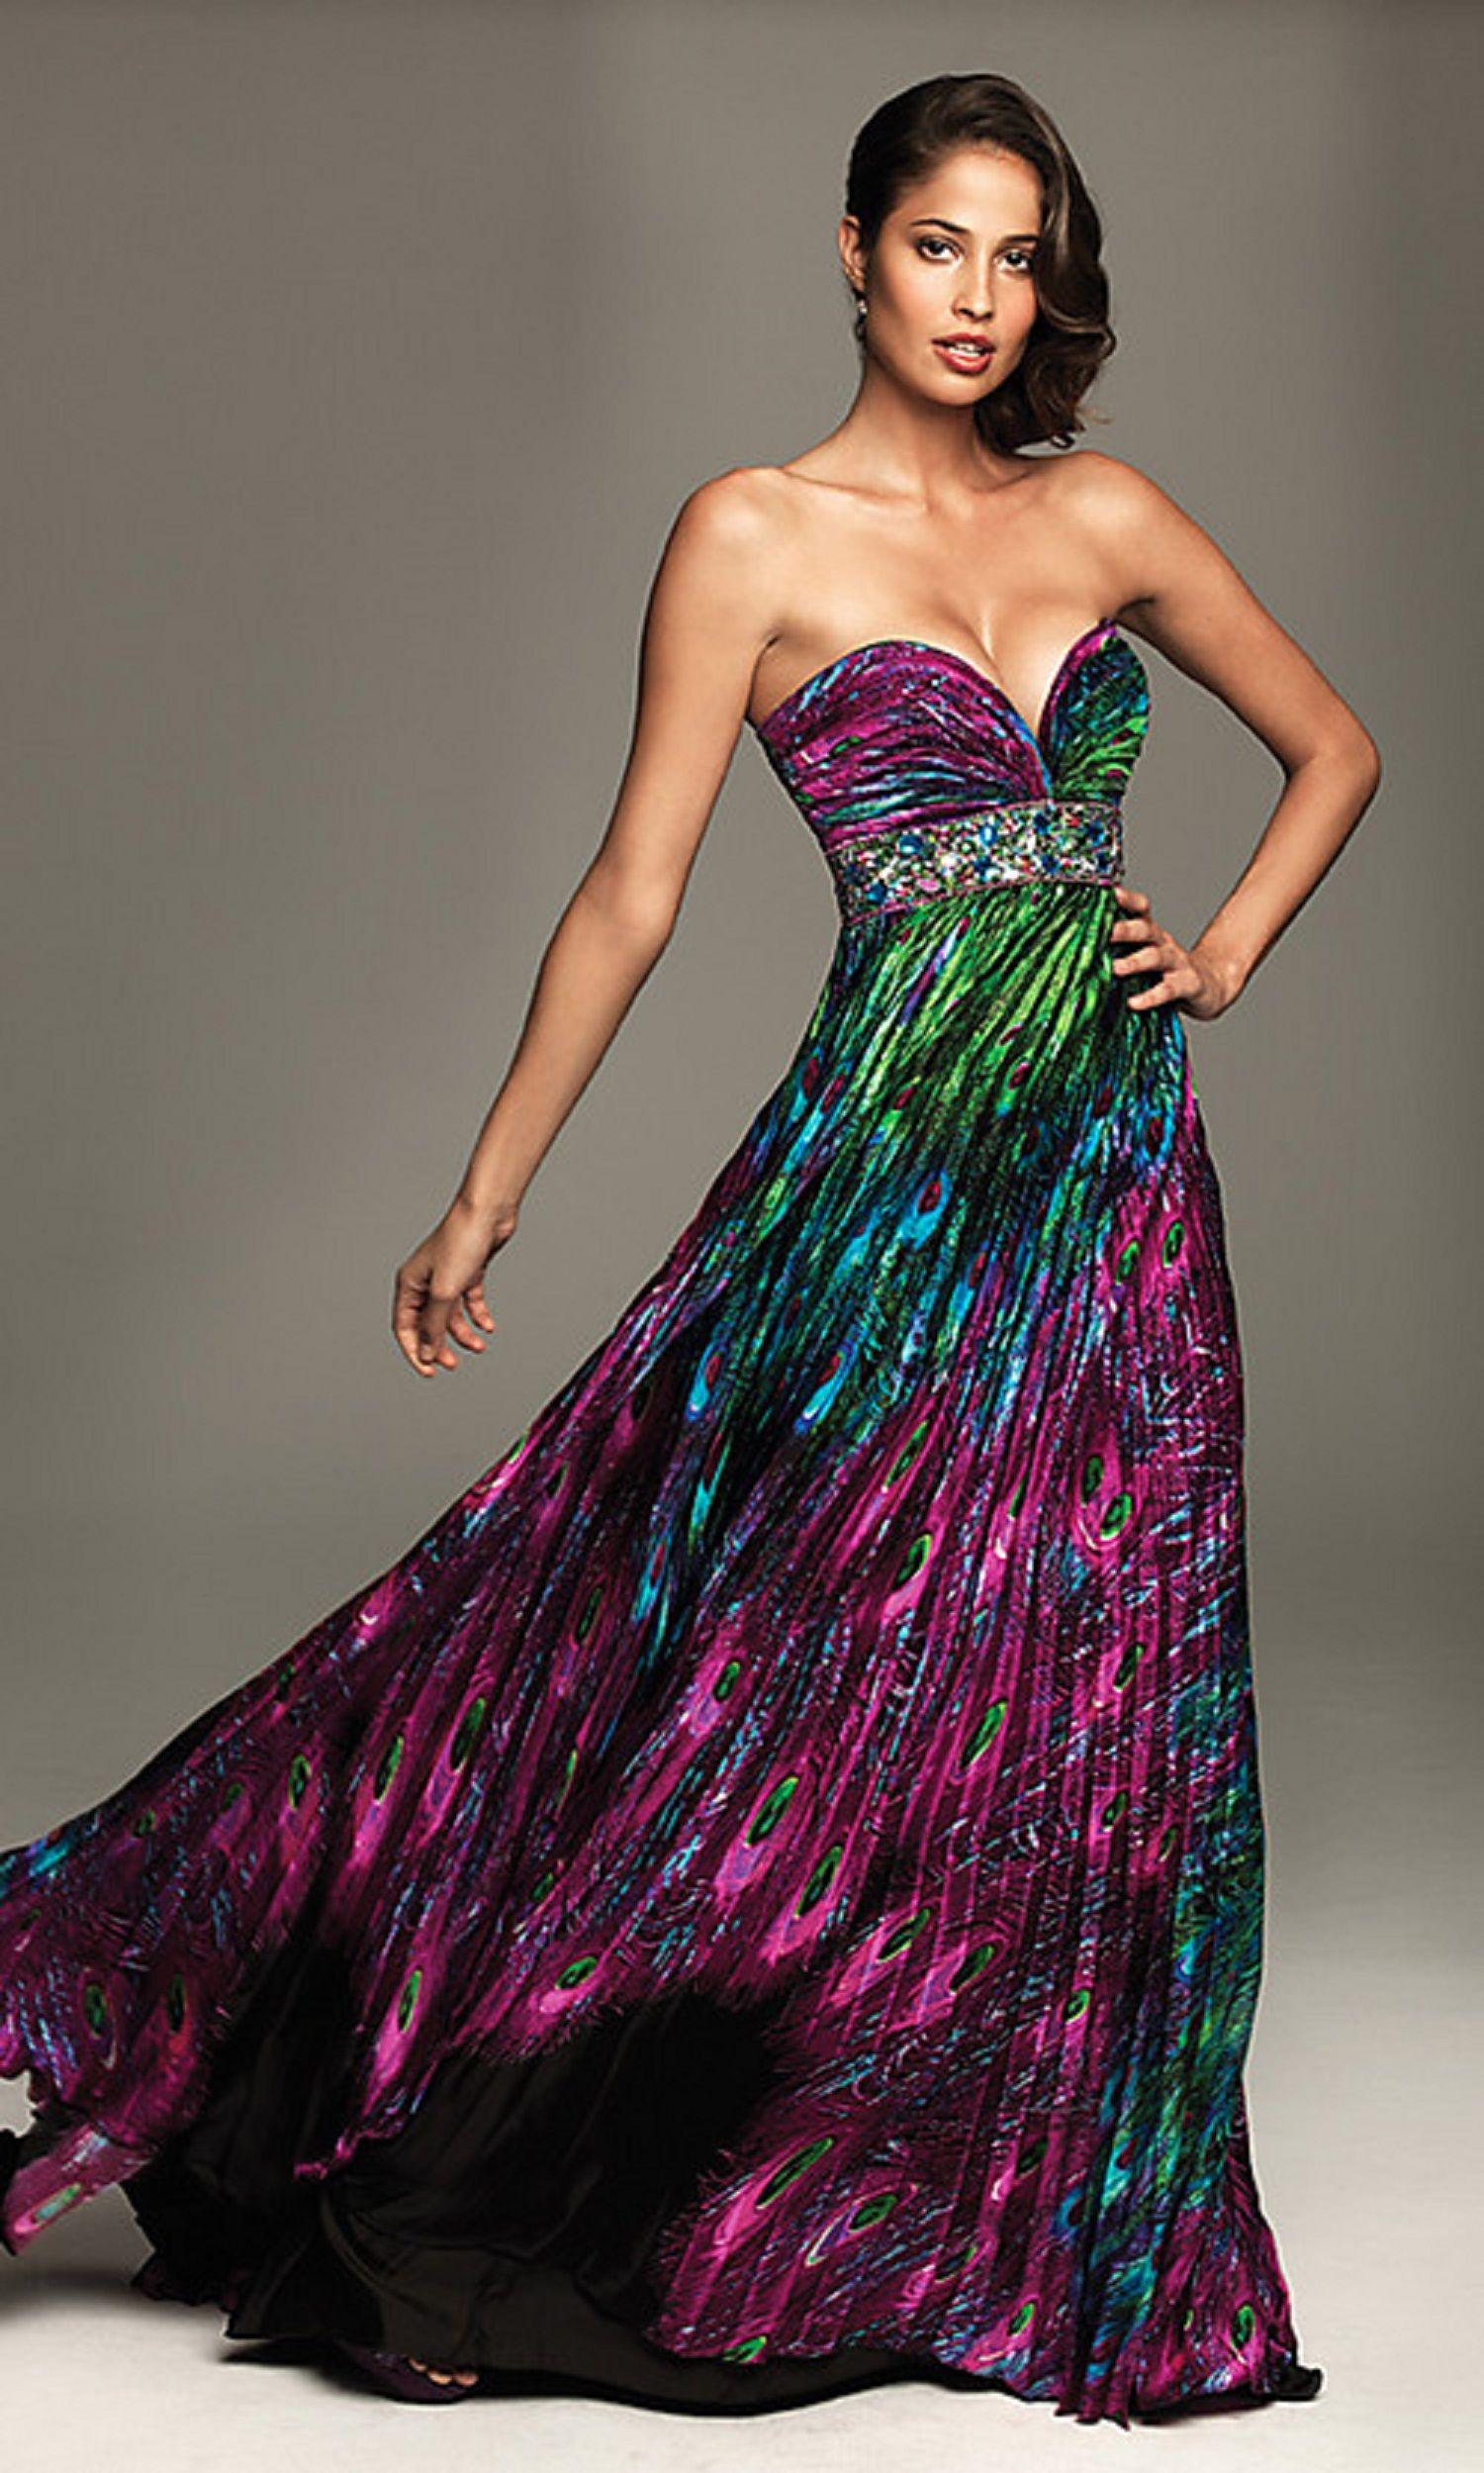 Peacock Print Prom Dresses : New Fashion Collection